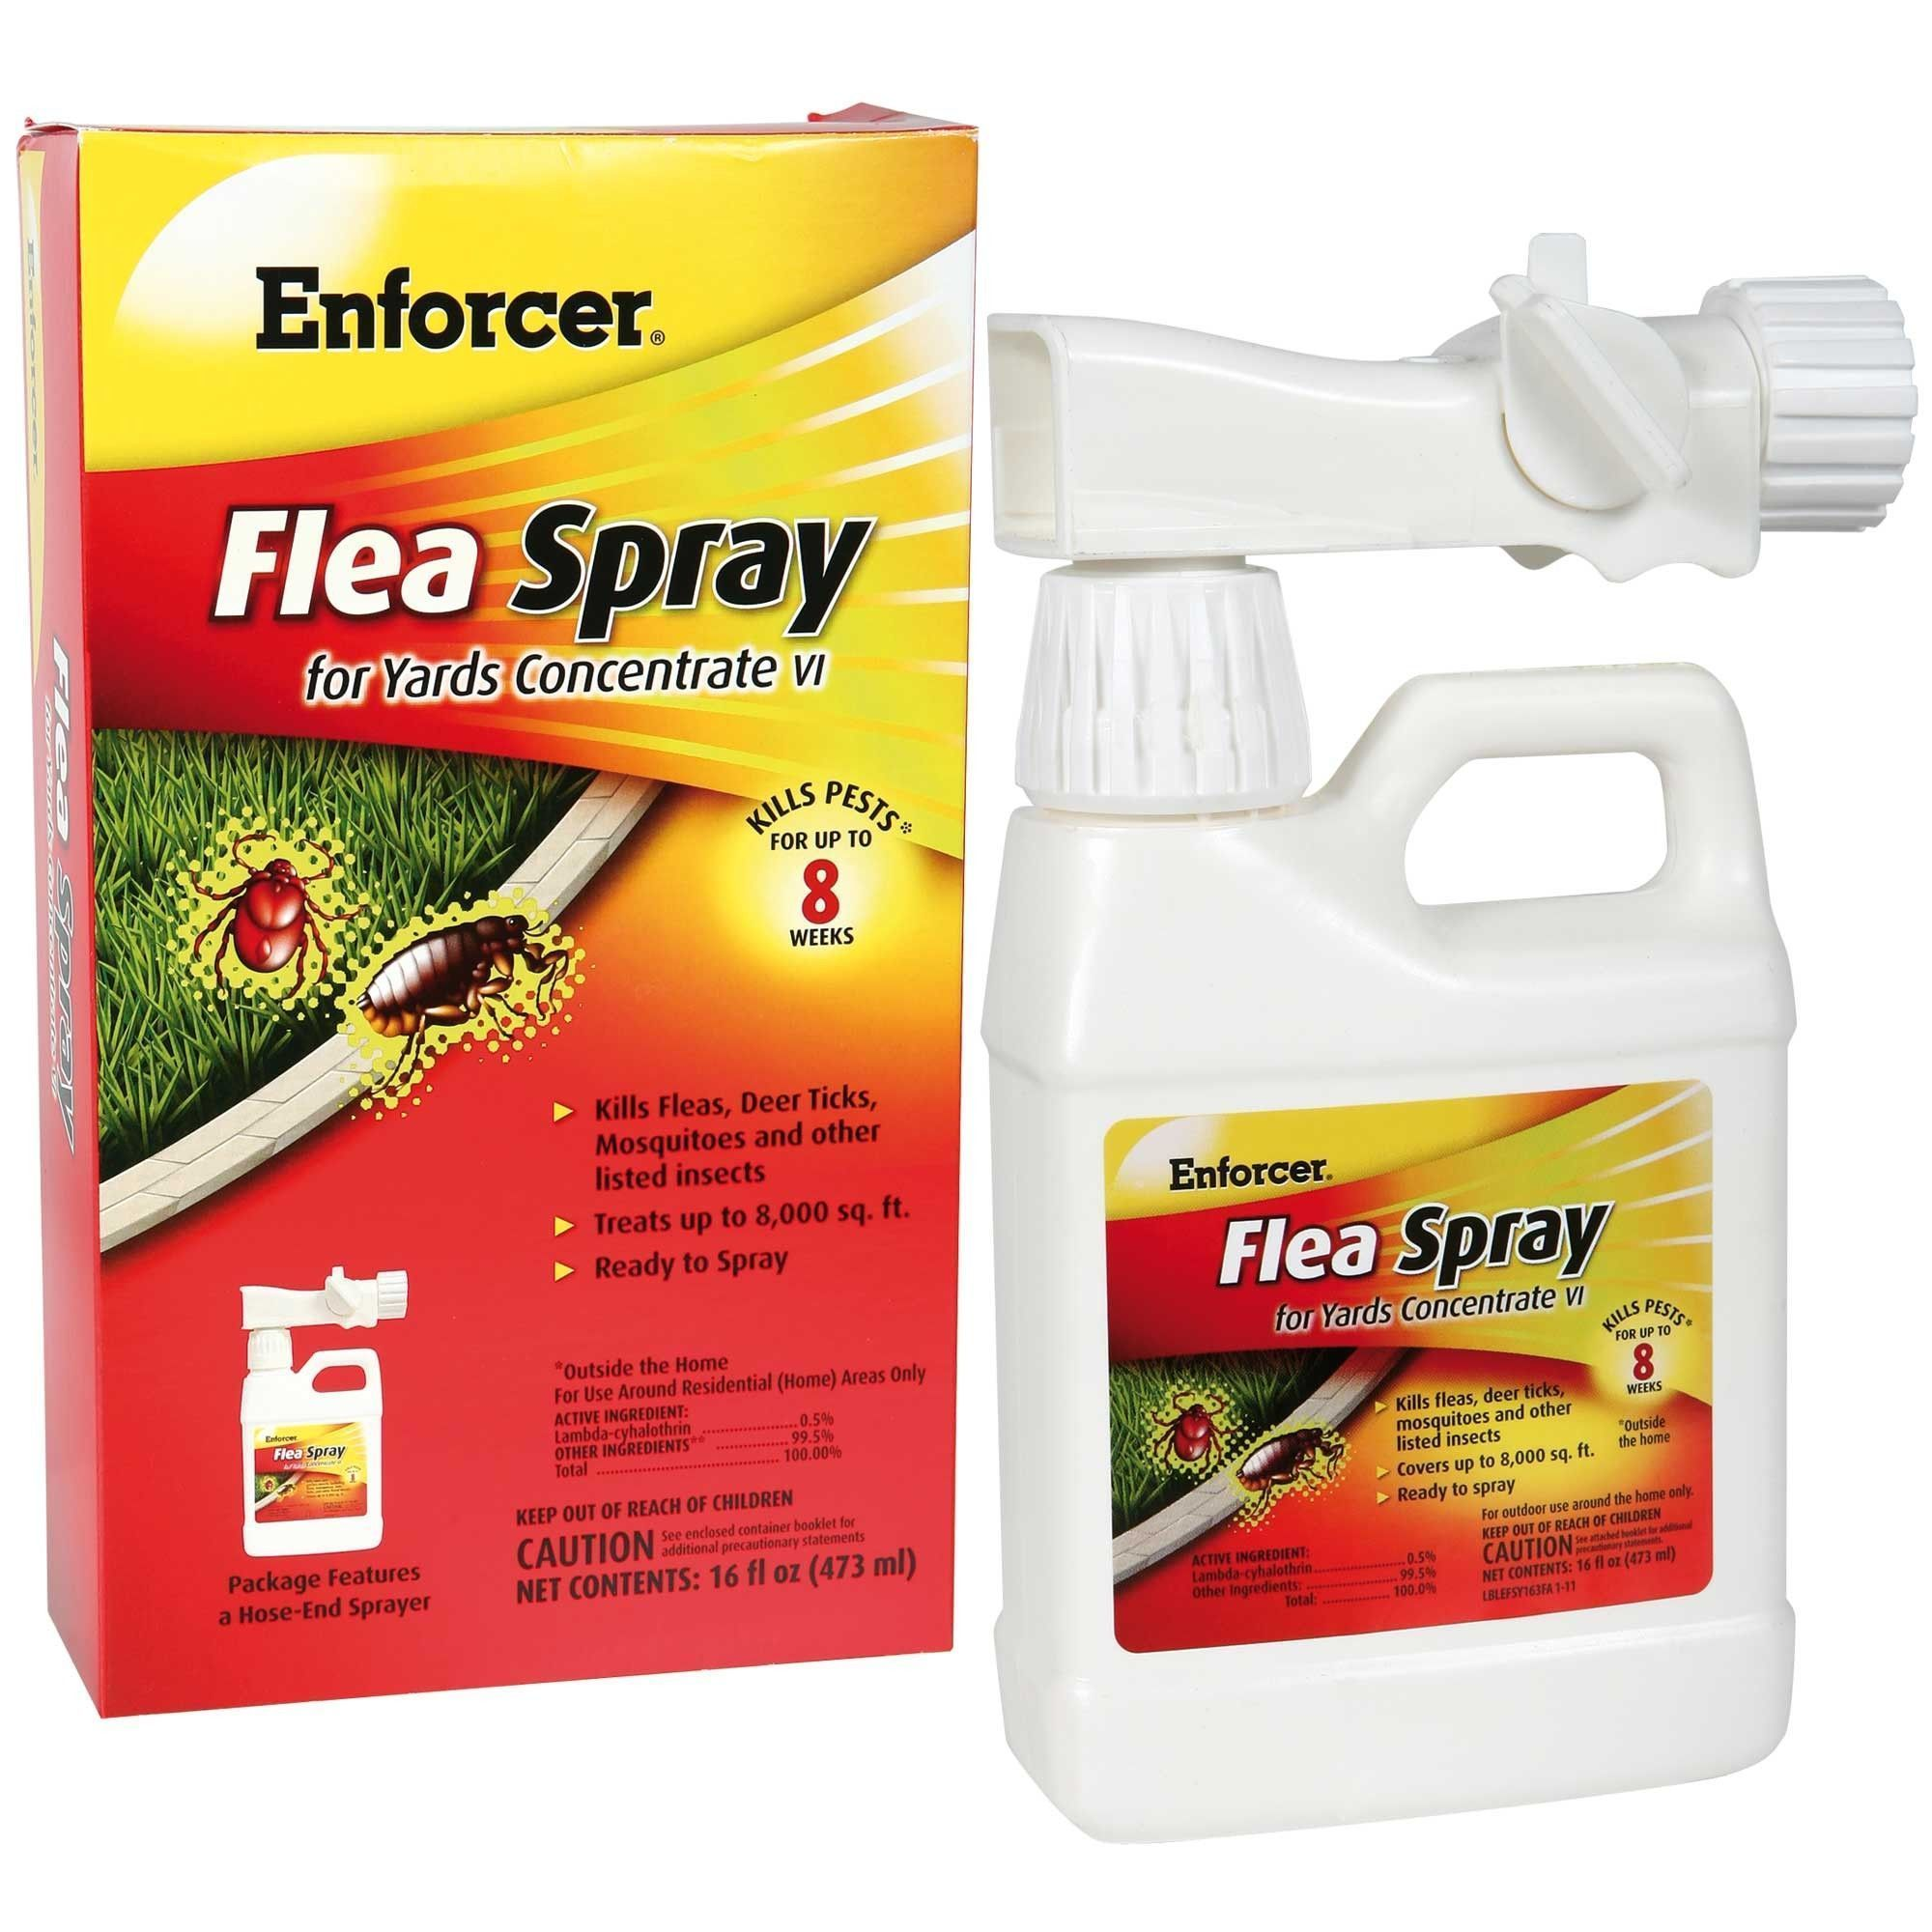 Best Tick Spray For Yard Commercial Industrial Pest Control Rodent Insect Bugs Insect Spray Pests Insect Control